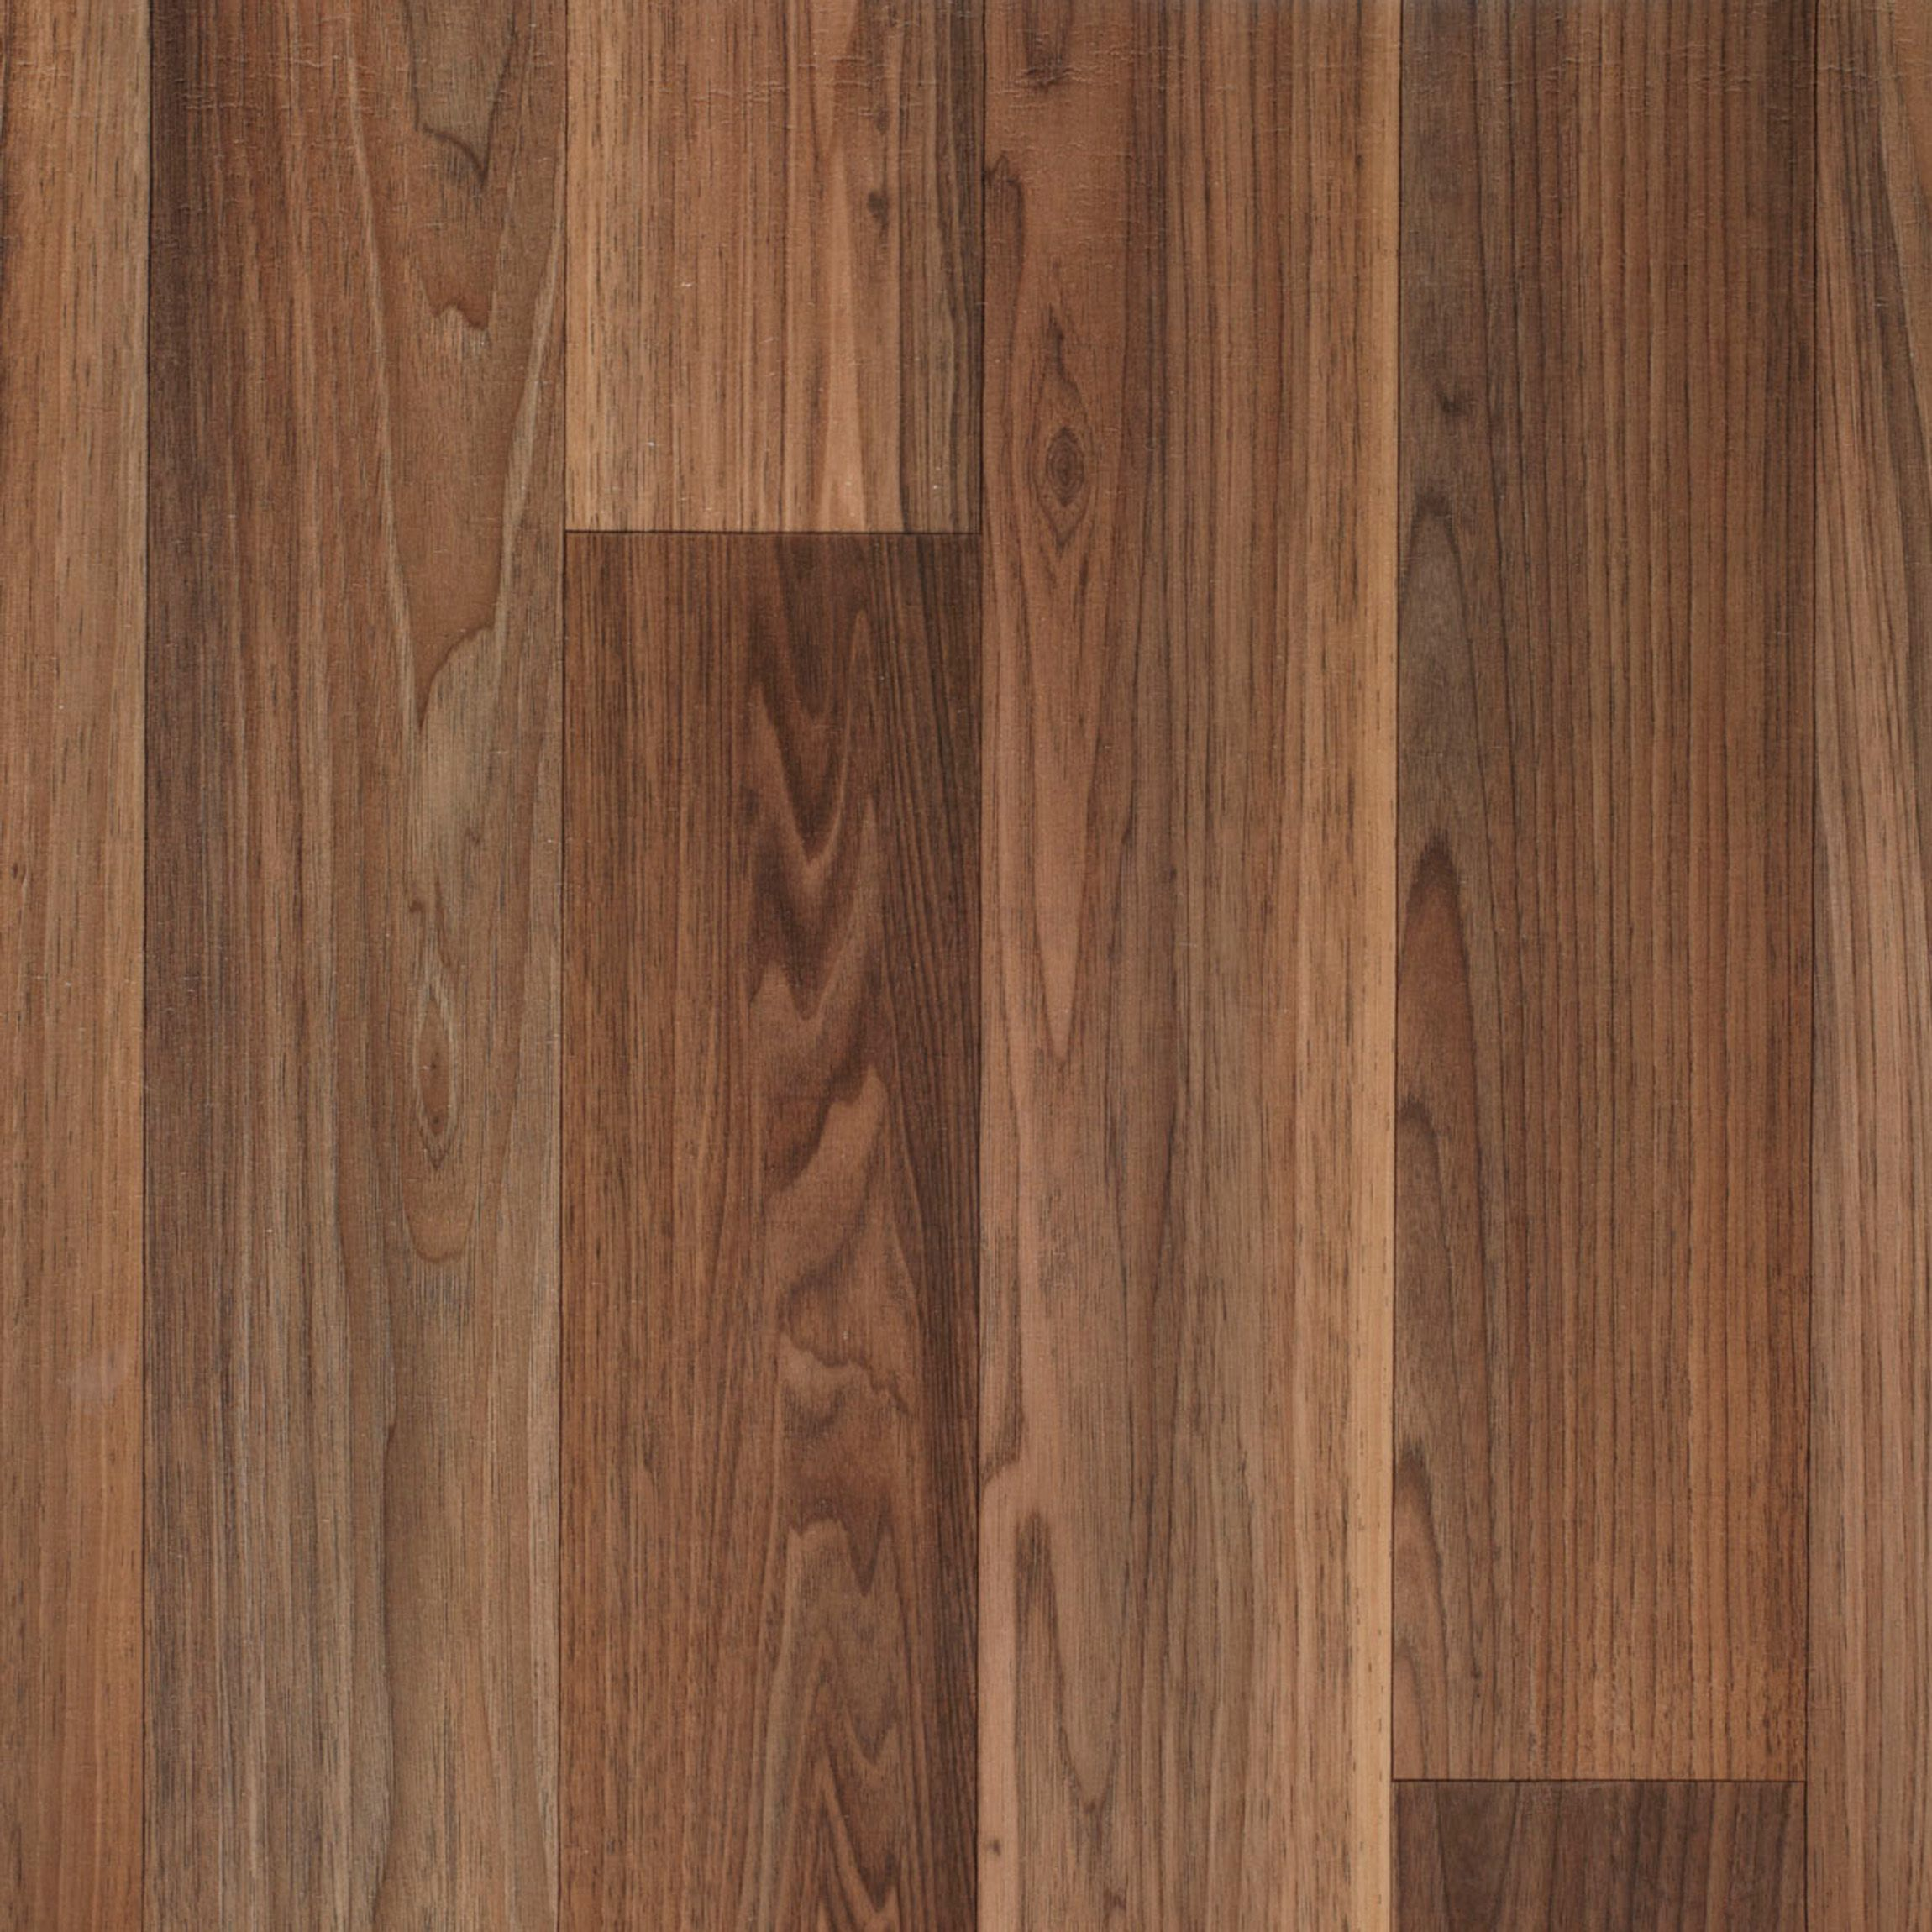 vinyl floor quote designs queens construct refinishing plank thickness sheet thick wood flooring hardwood choice home steps image sheets p furniture r ny floors